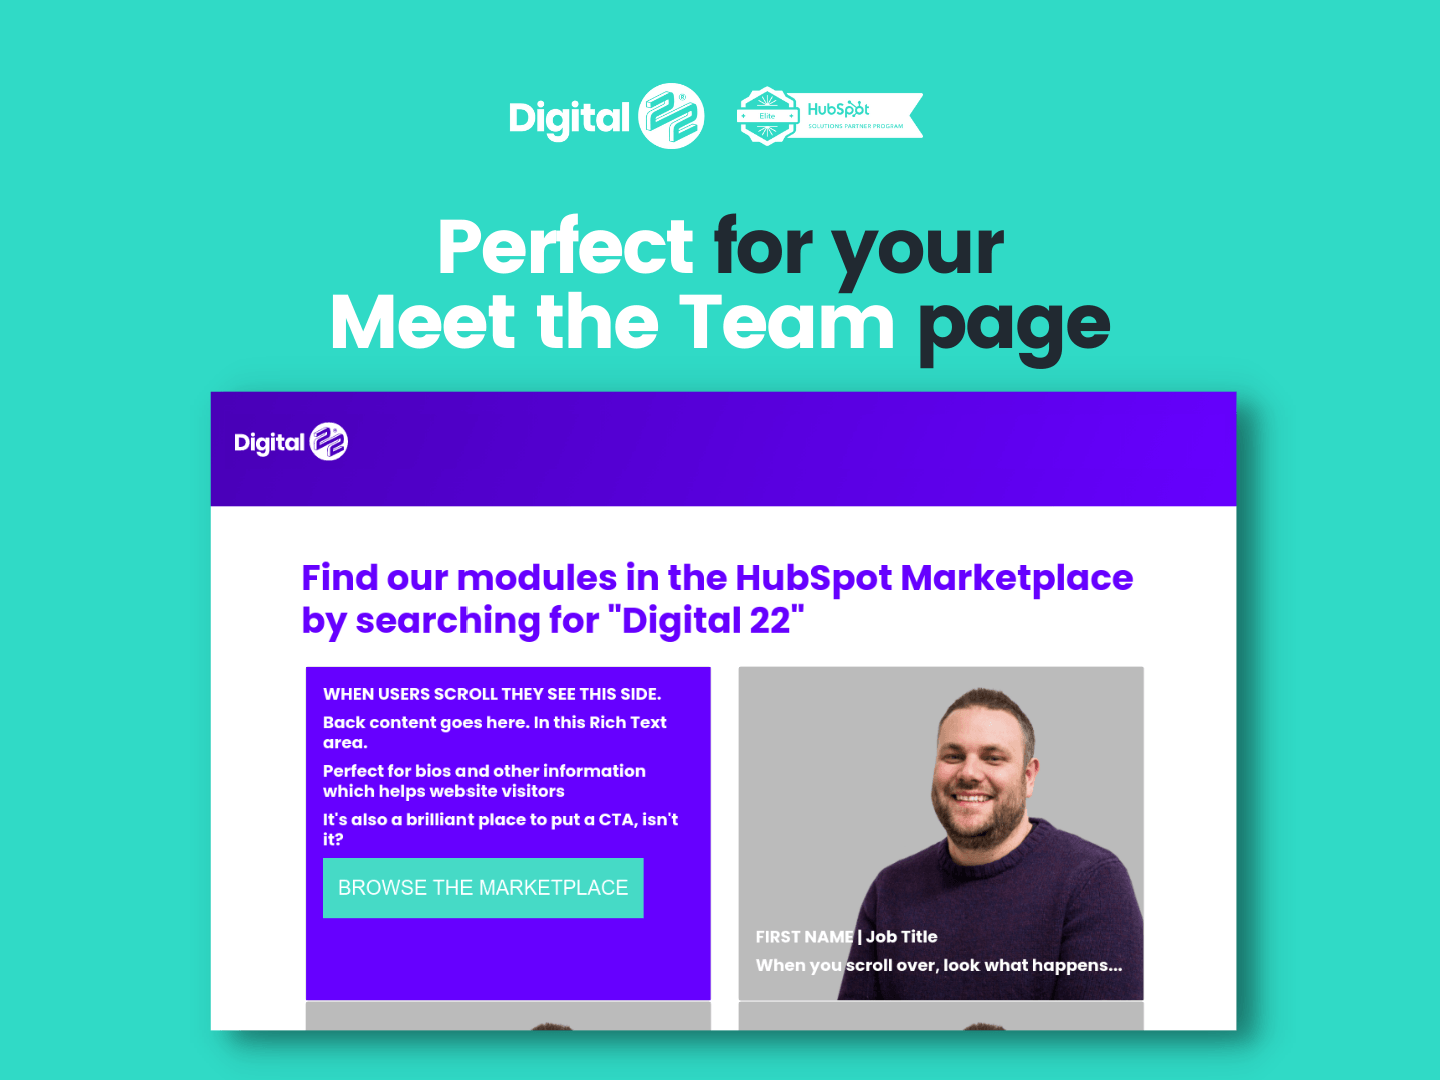 image flip card feature meet the team example